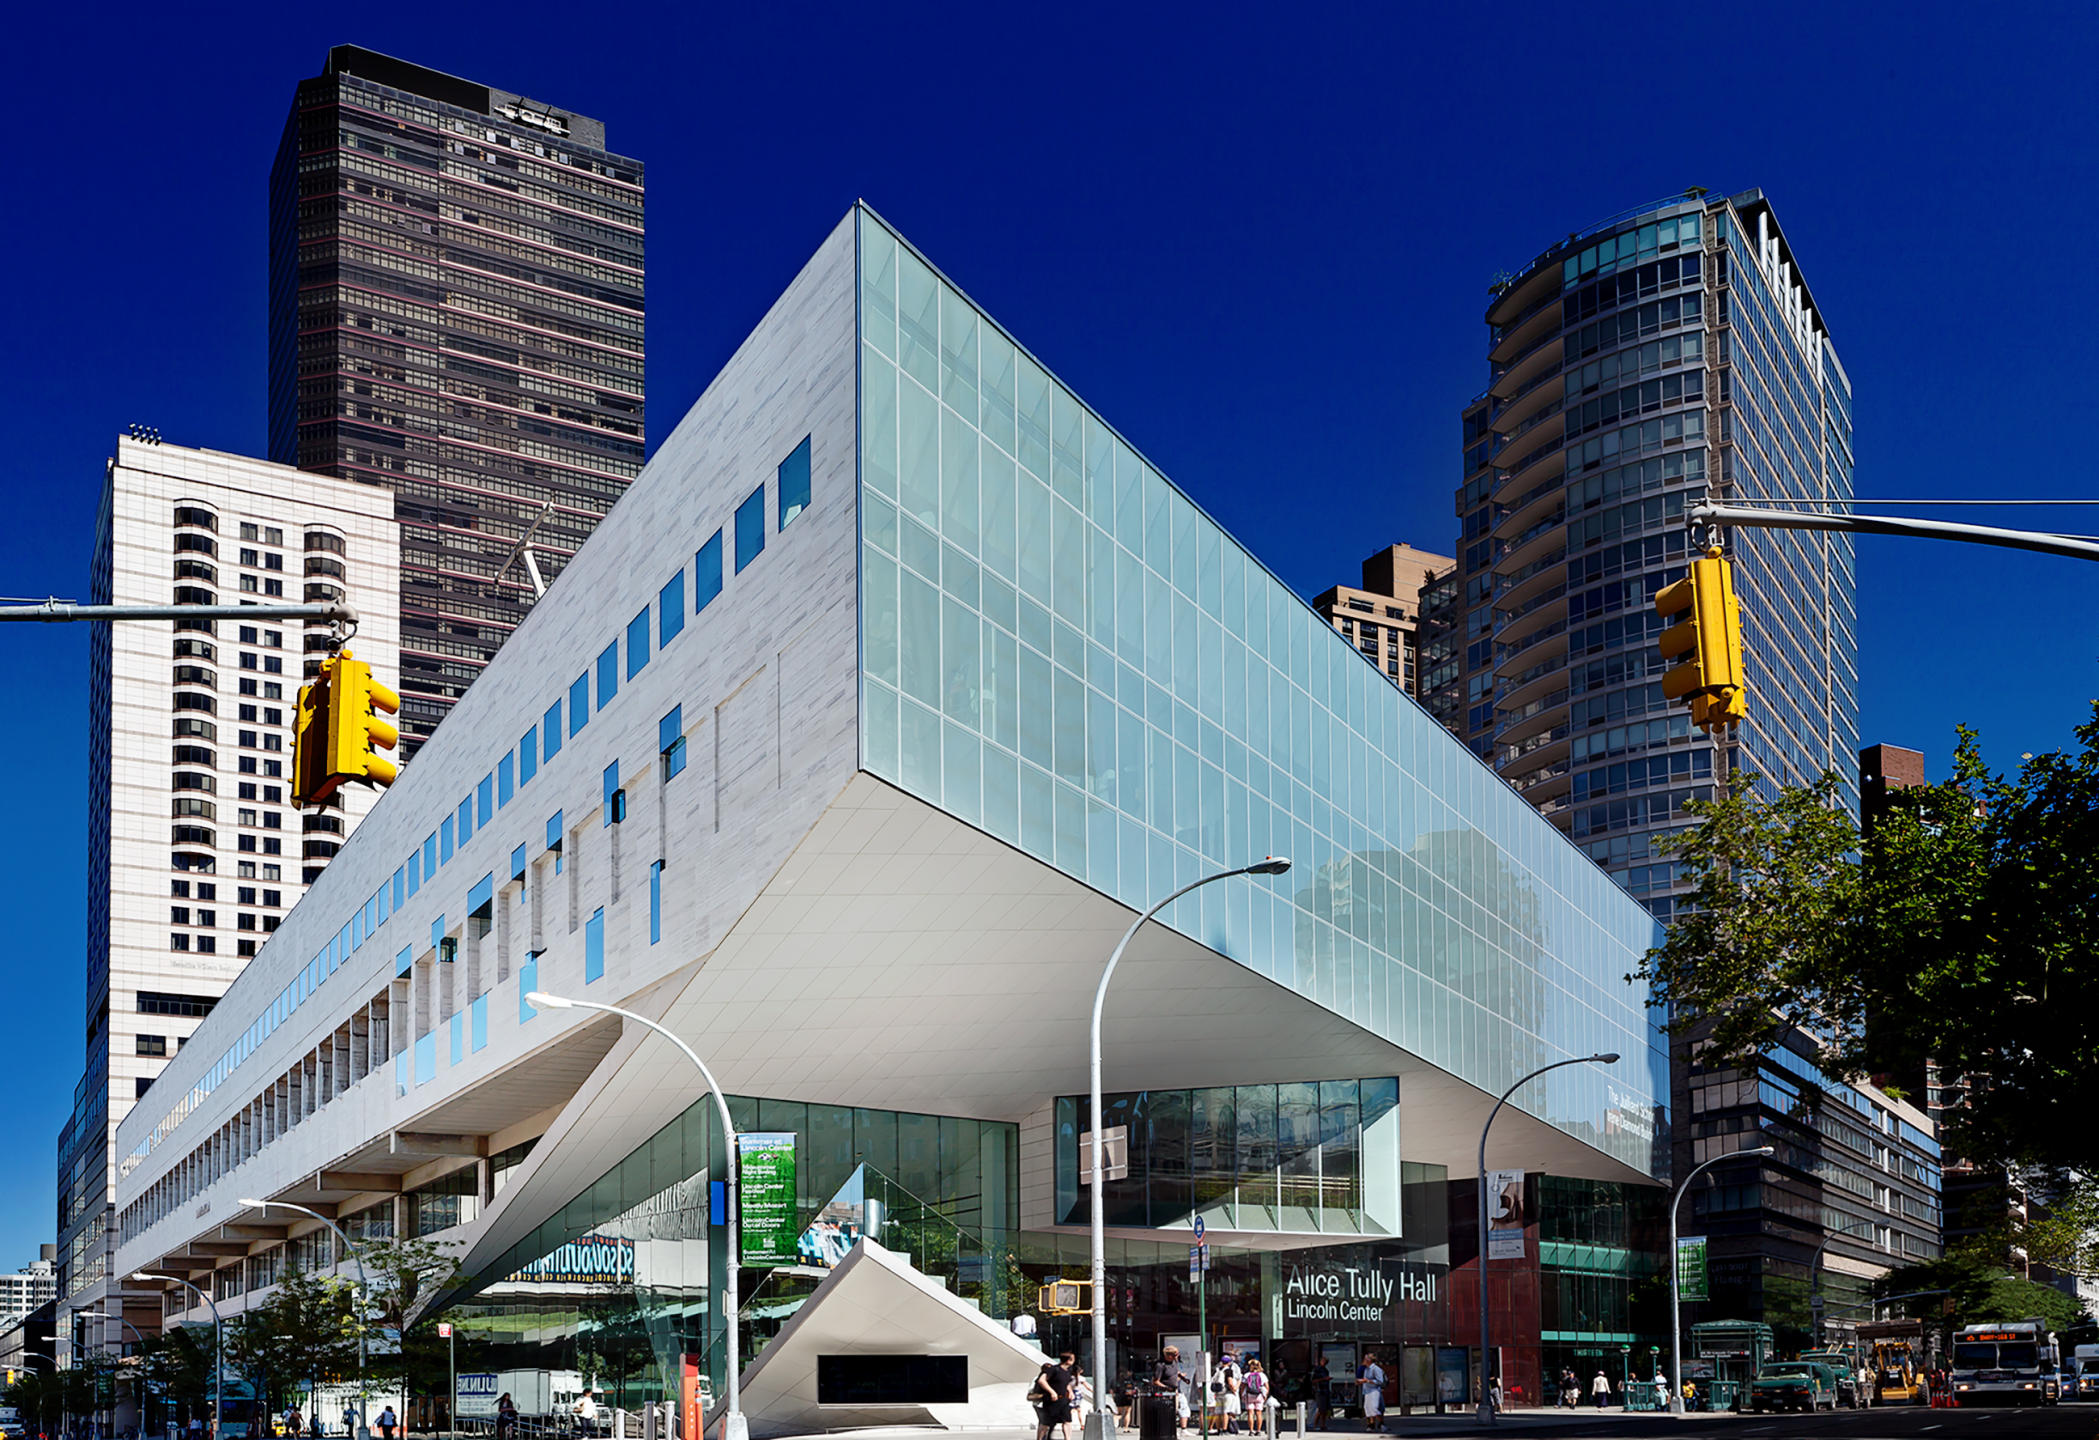 Alice Tully Hall, NYC Lincoln Center renovated by Diller Scofidio  + Renfro : Miscellanous Projects : New York NY Architectural Photographer | Interior and Exterior